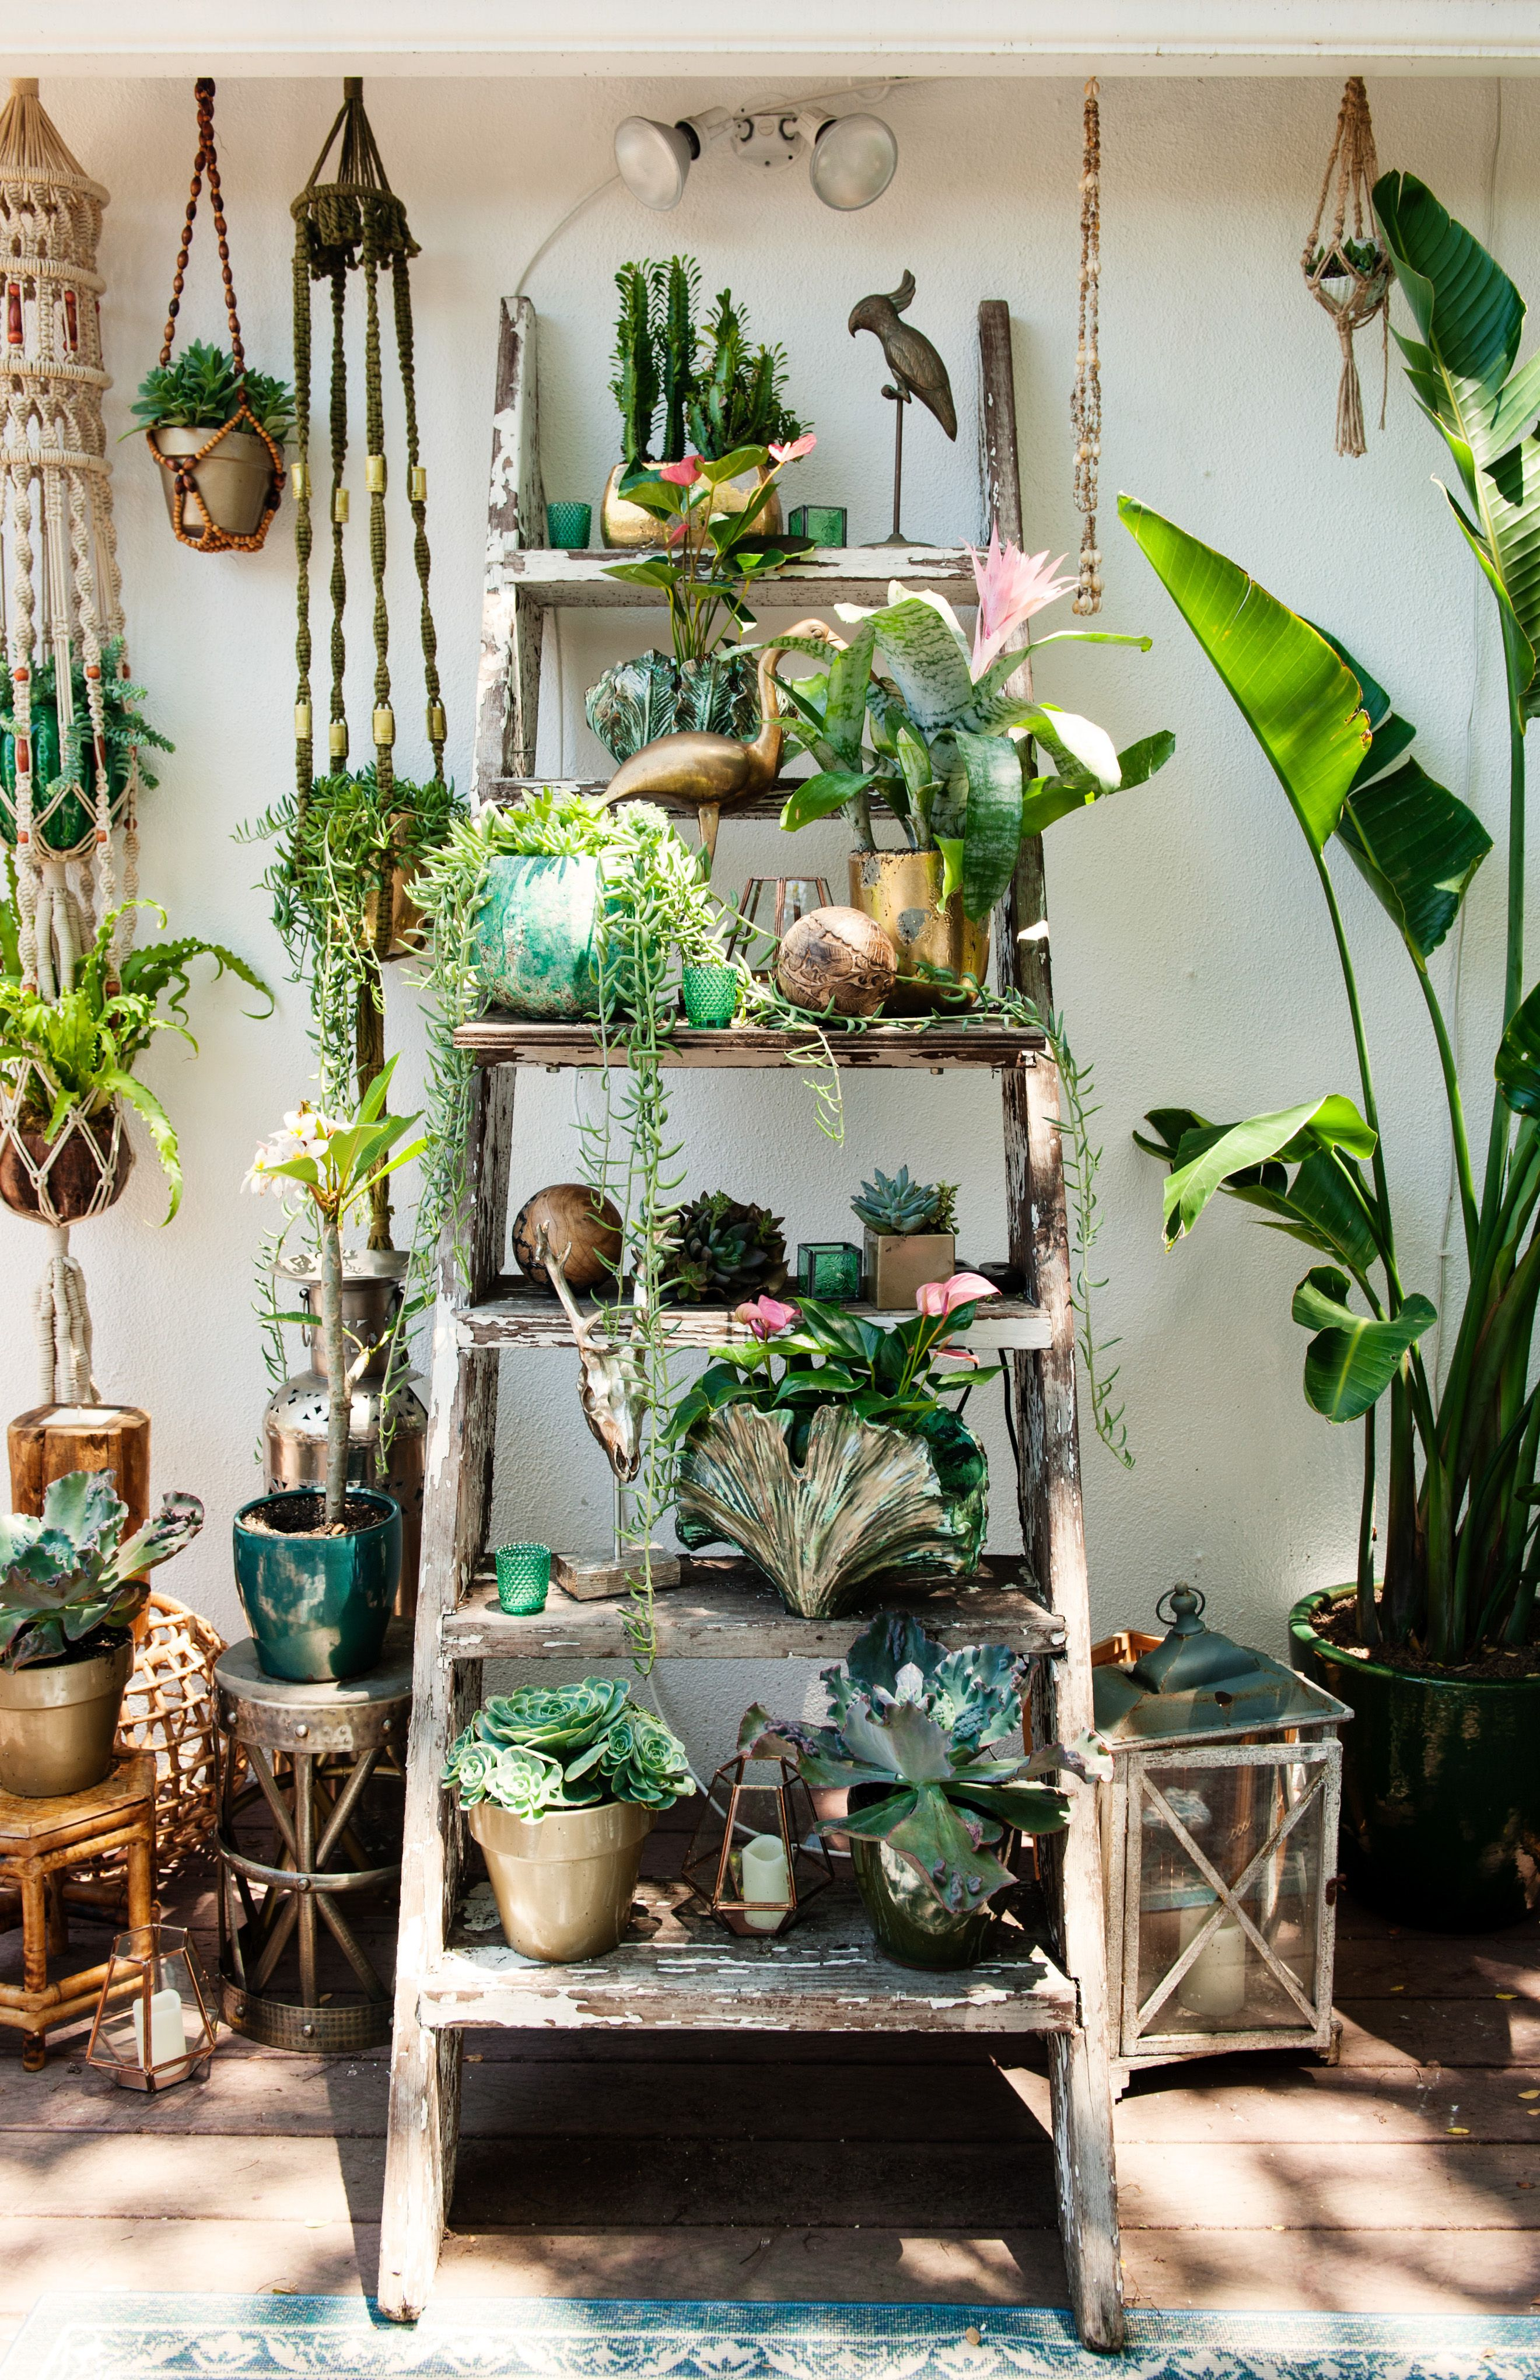 Home Decor Plants Plants Galore Plant Decor In 2019 Pinterest Plants